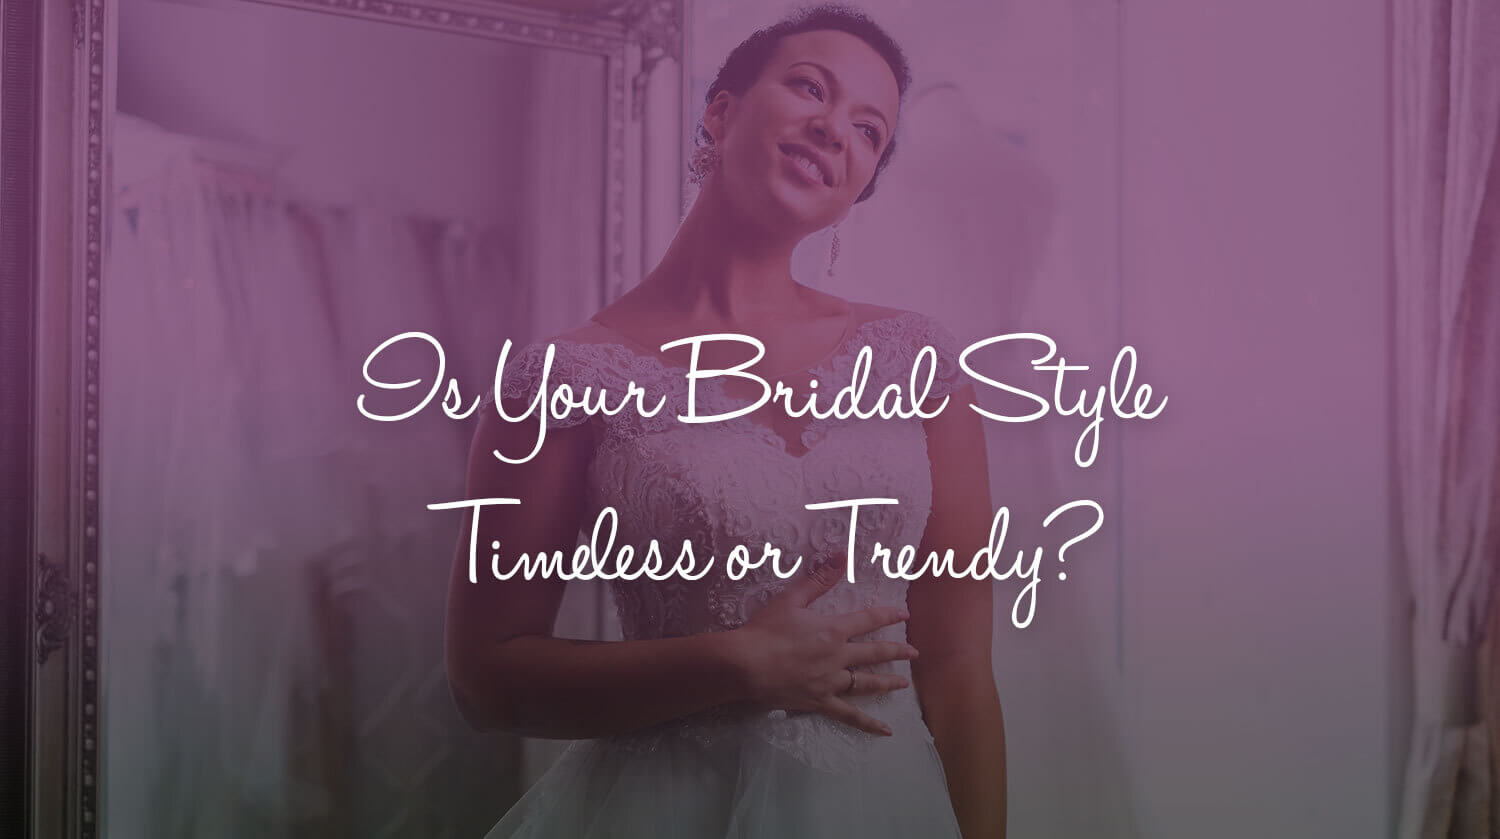 Is your bridal style timeless or trendy